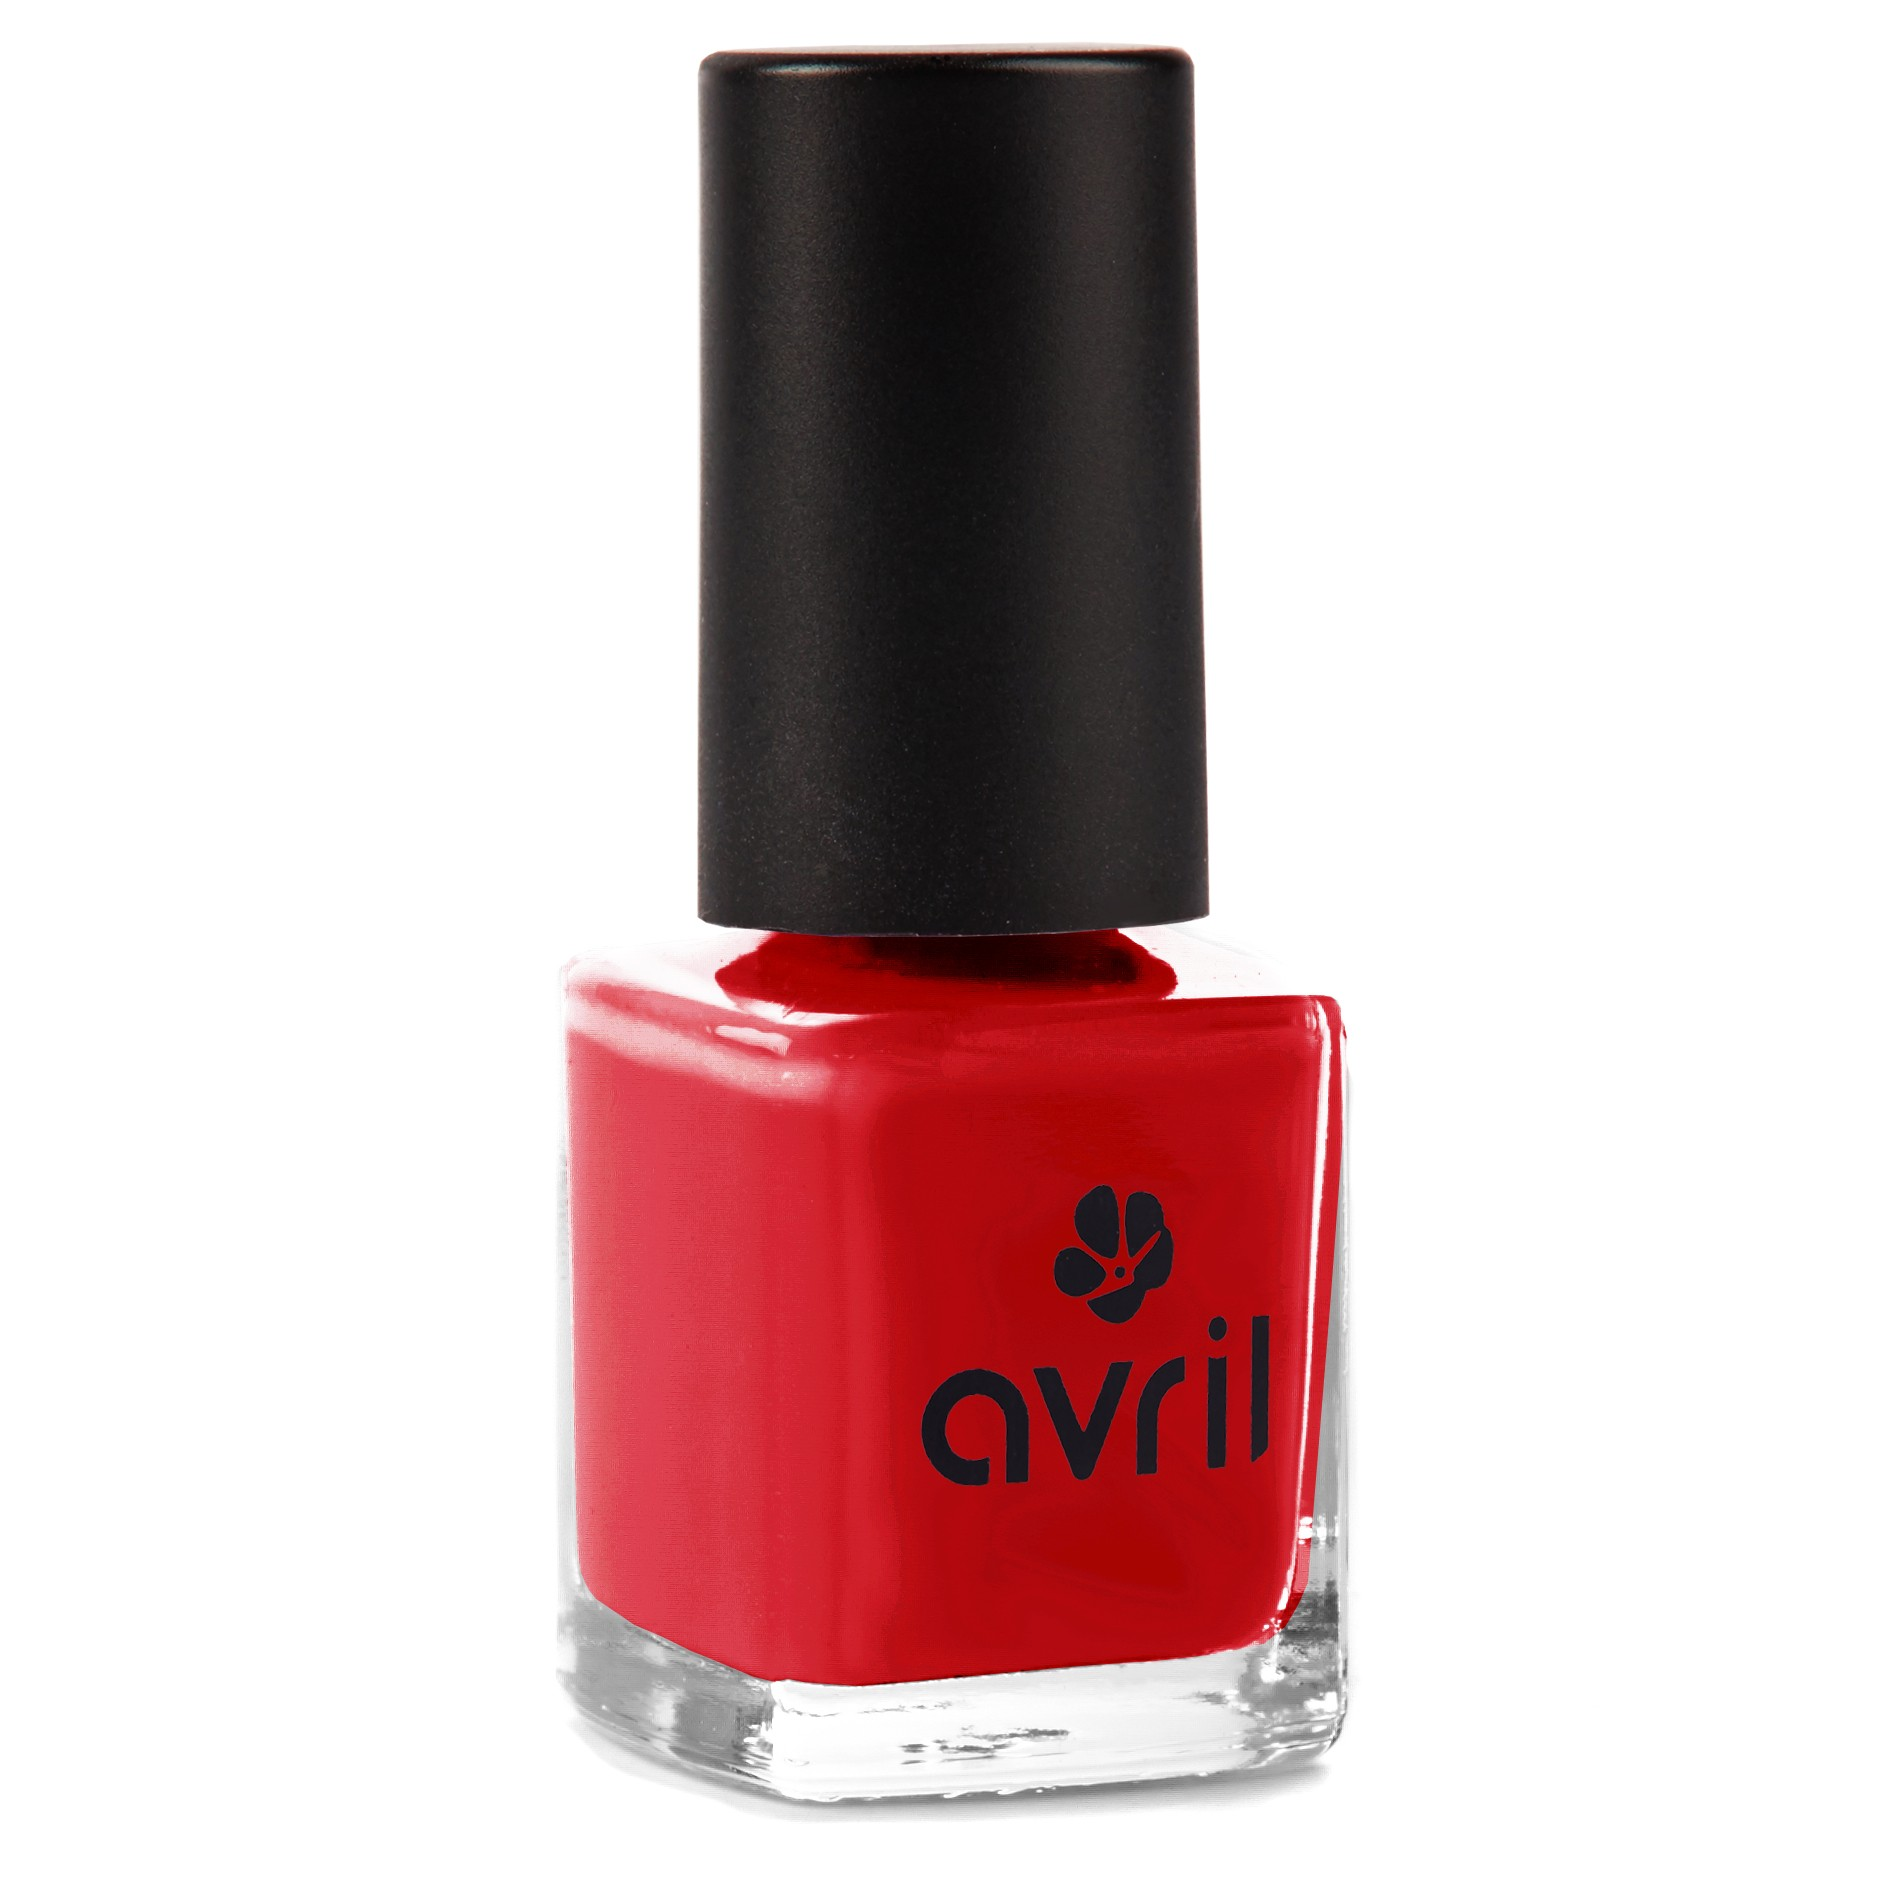 Nail Polish Not Tested On Animals And Vegan Avril Make Over Ultra Cover Liquid Matt Foundation 33 Ml Vermillon N33 7